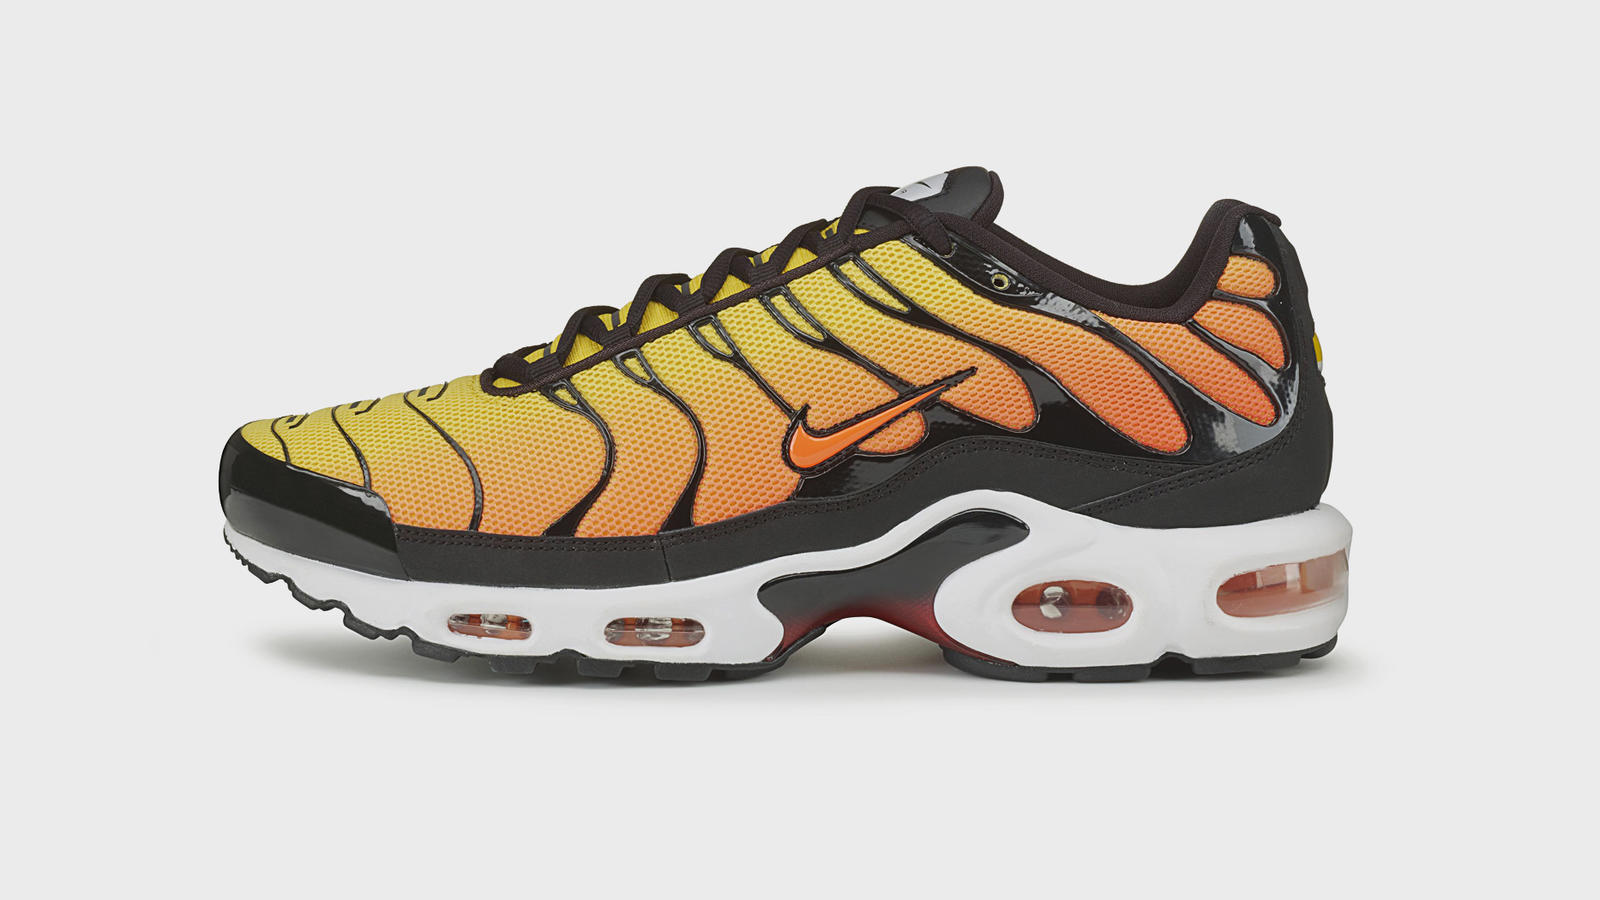 detailed look 33723 13cd5 The Untold Story of the Nike Air Max Plus 23